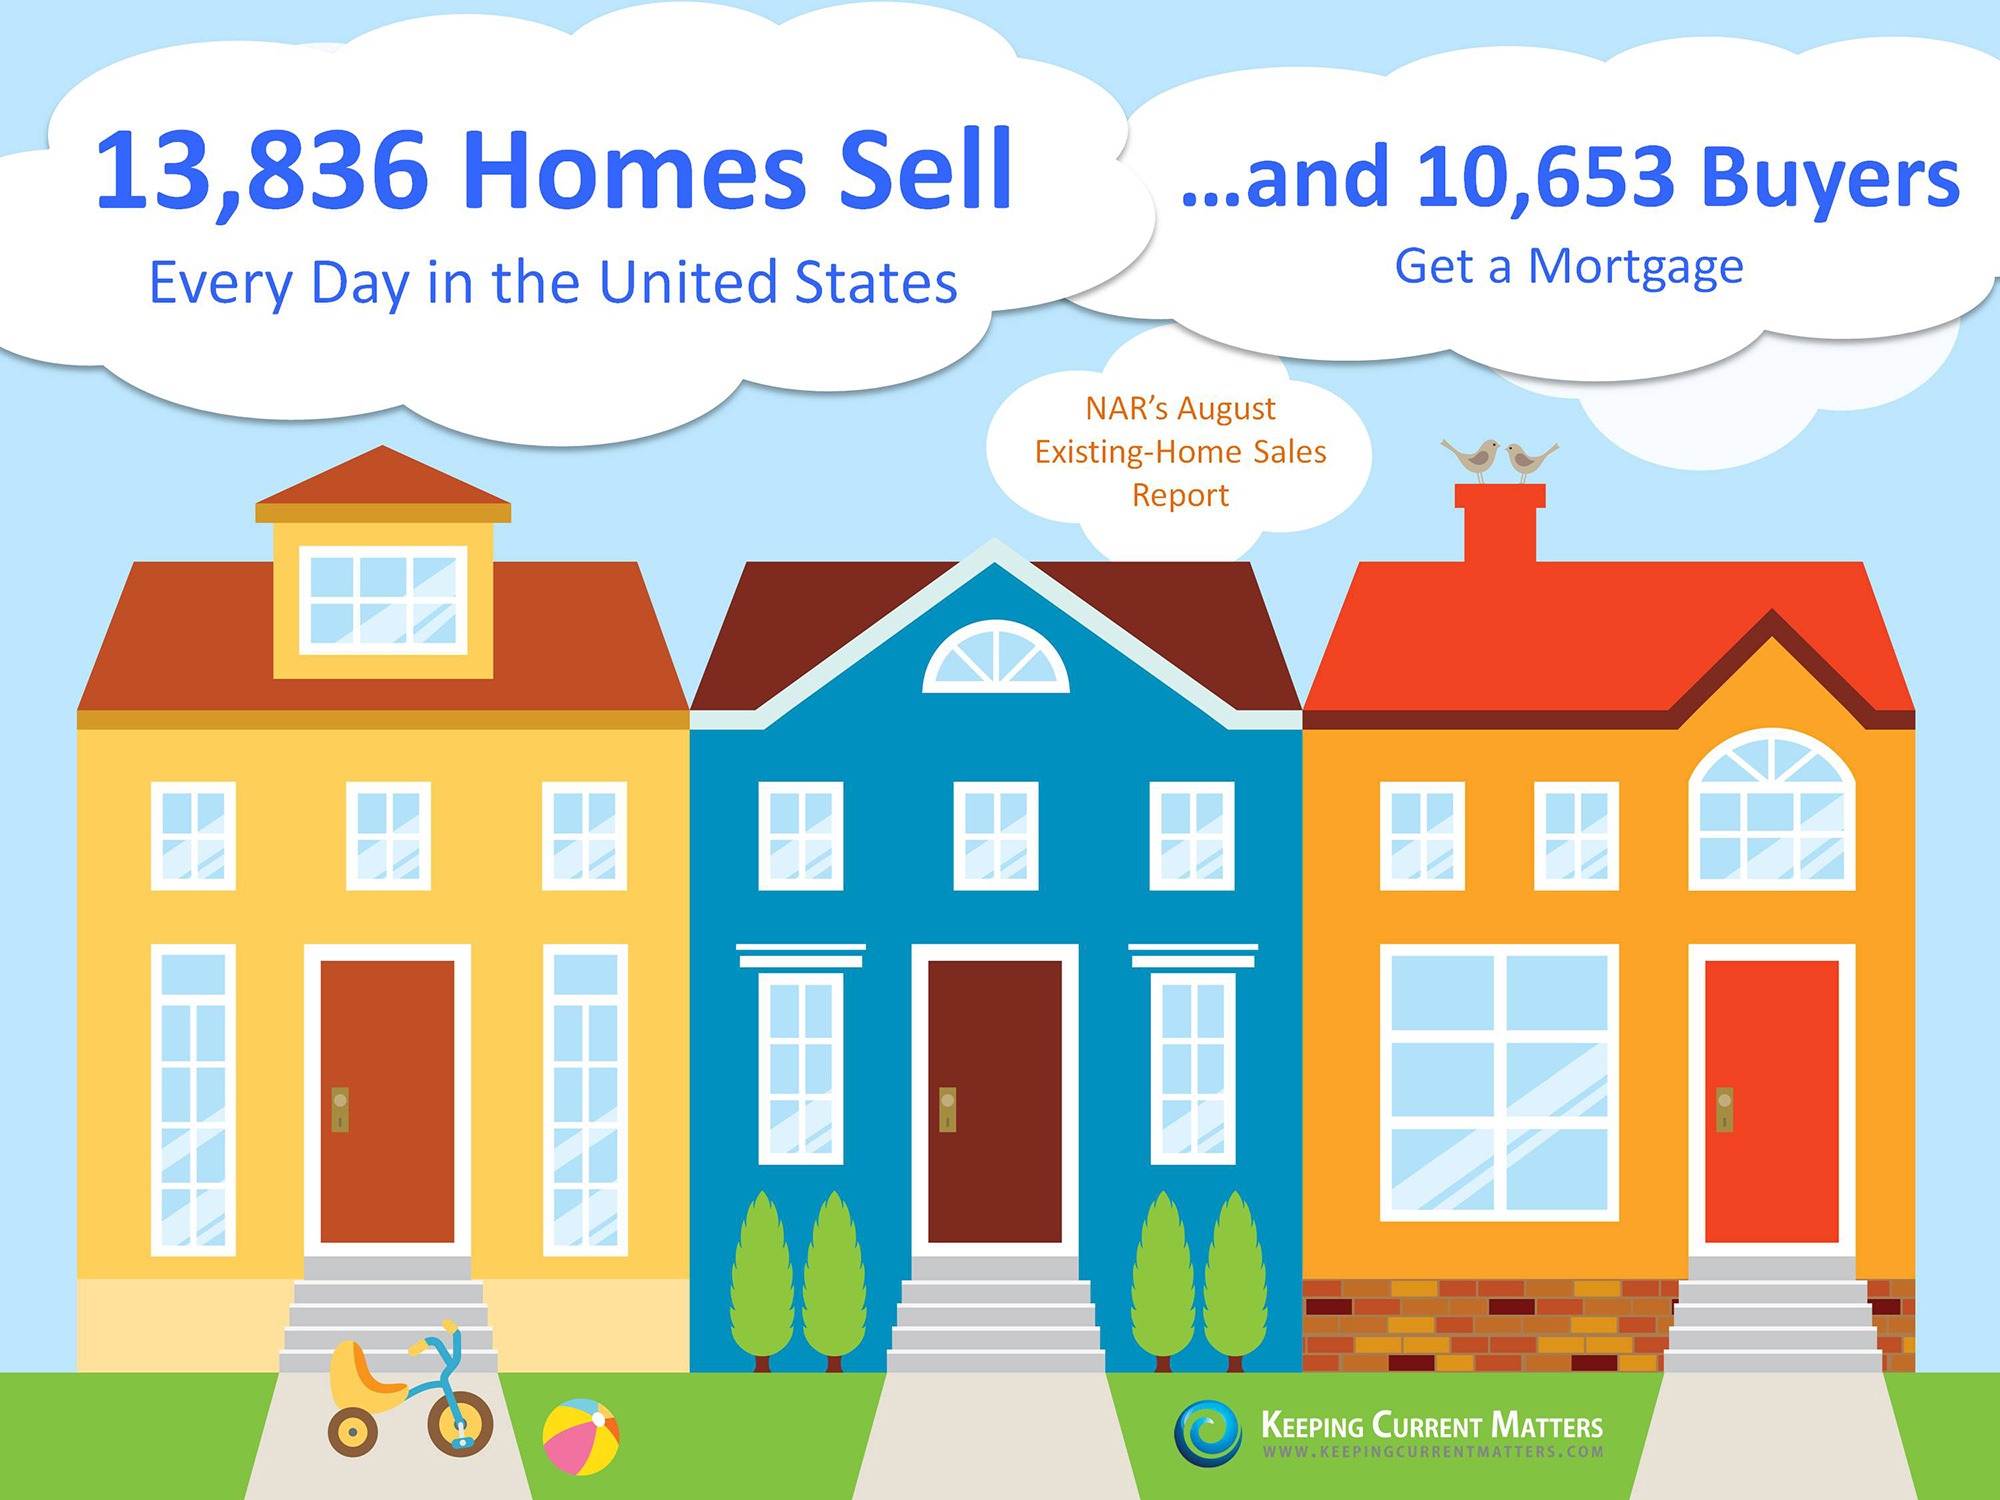 How Many Homes Sell Every Day?